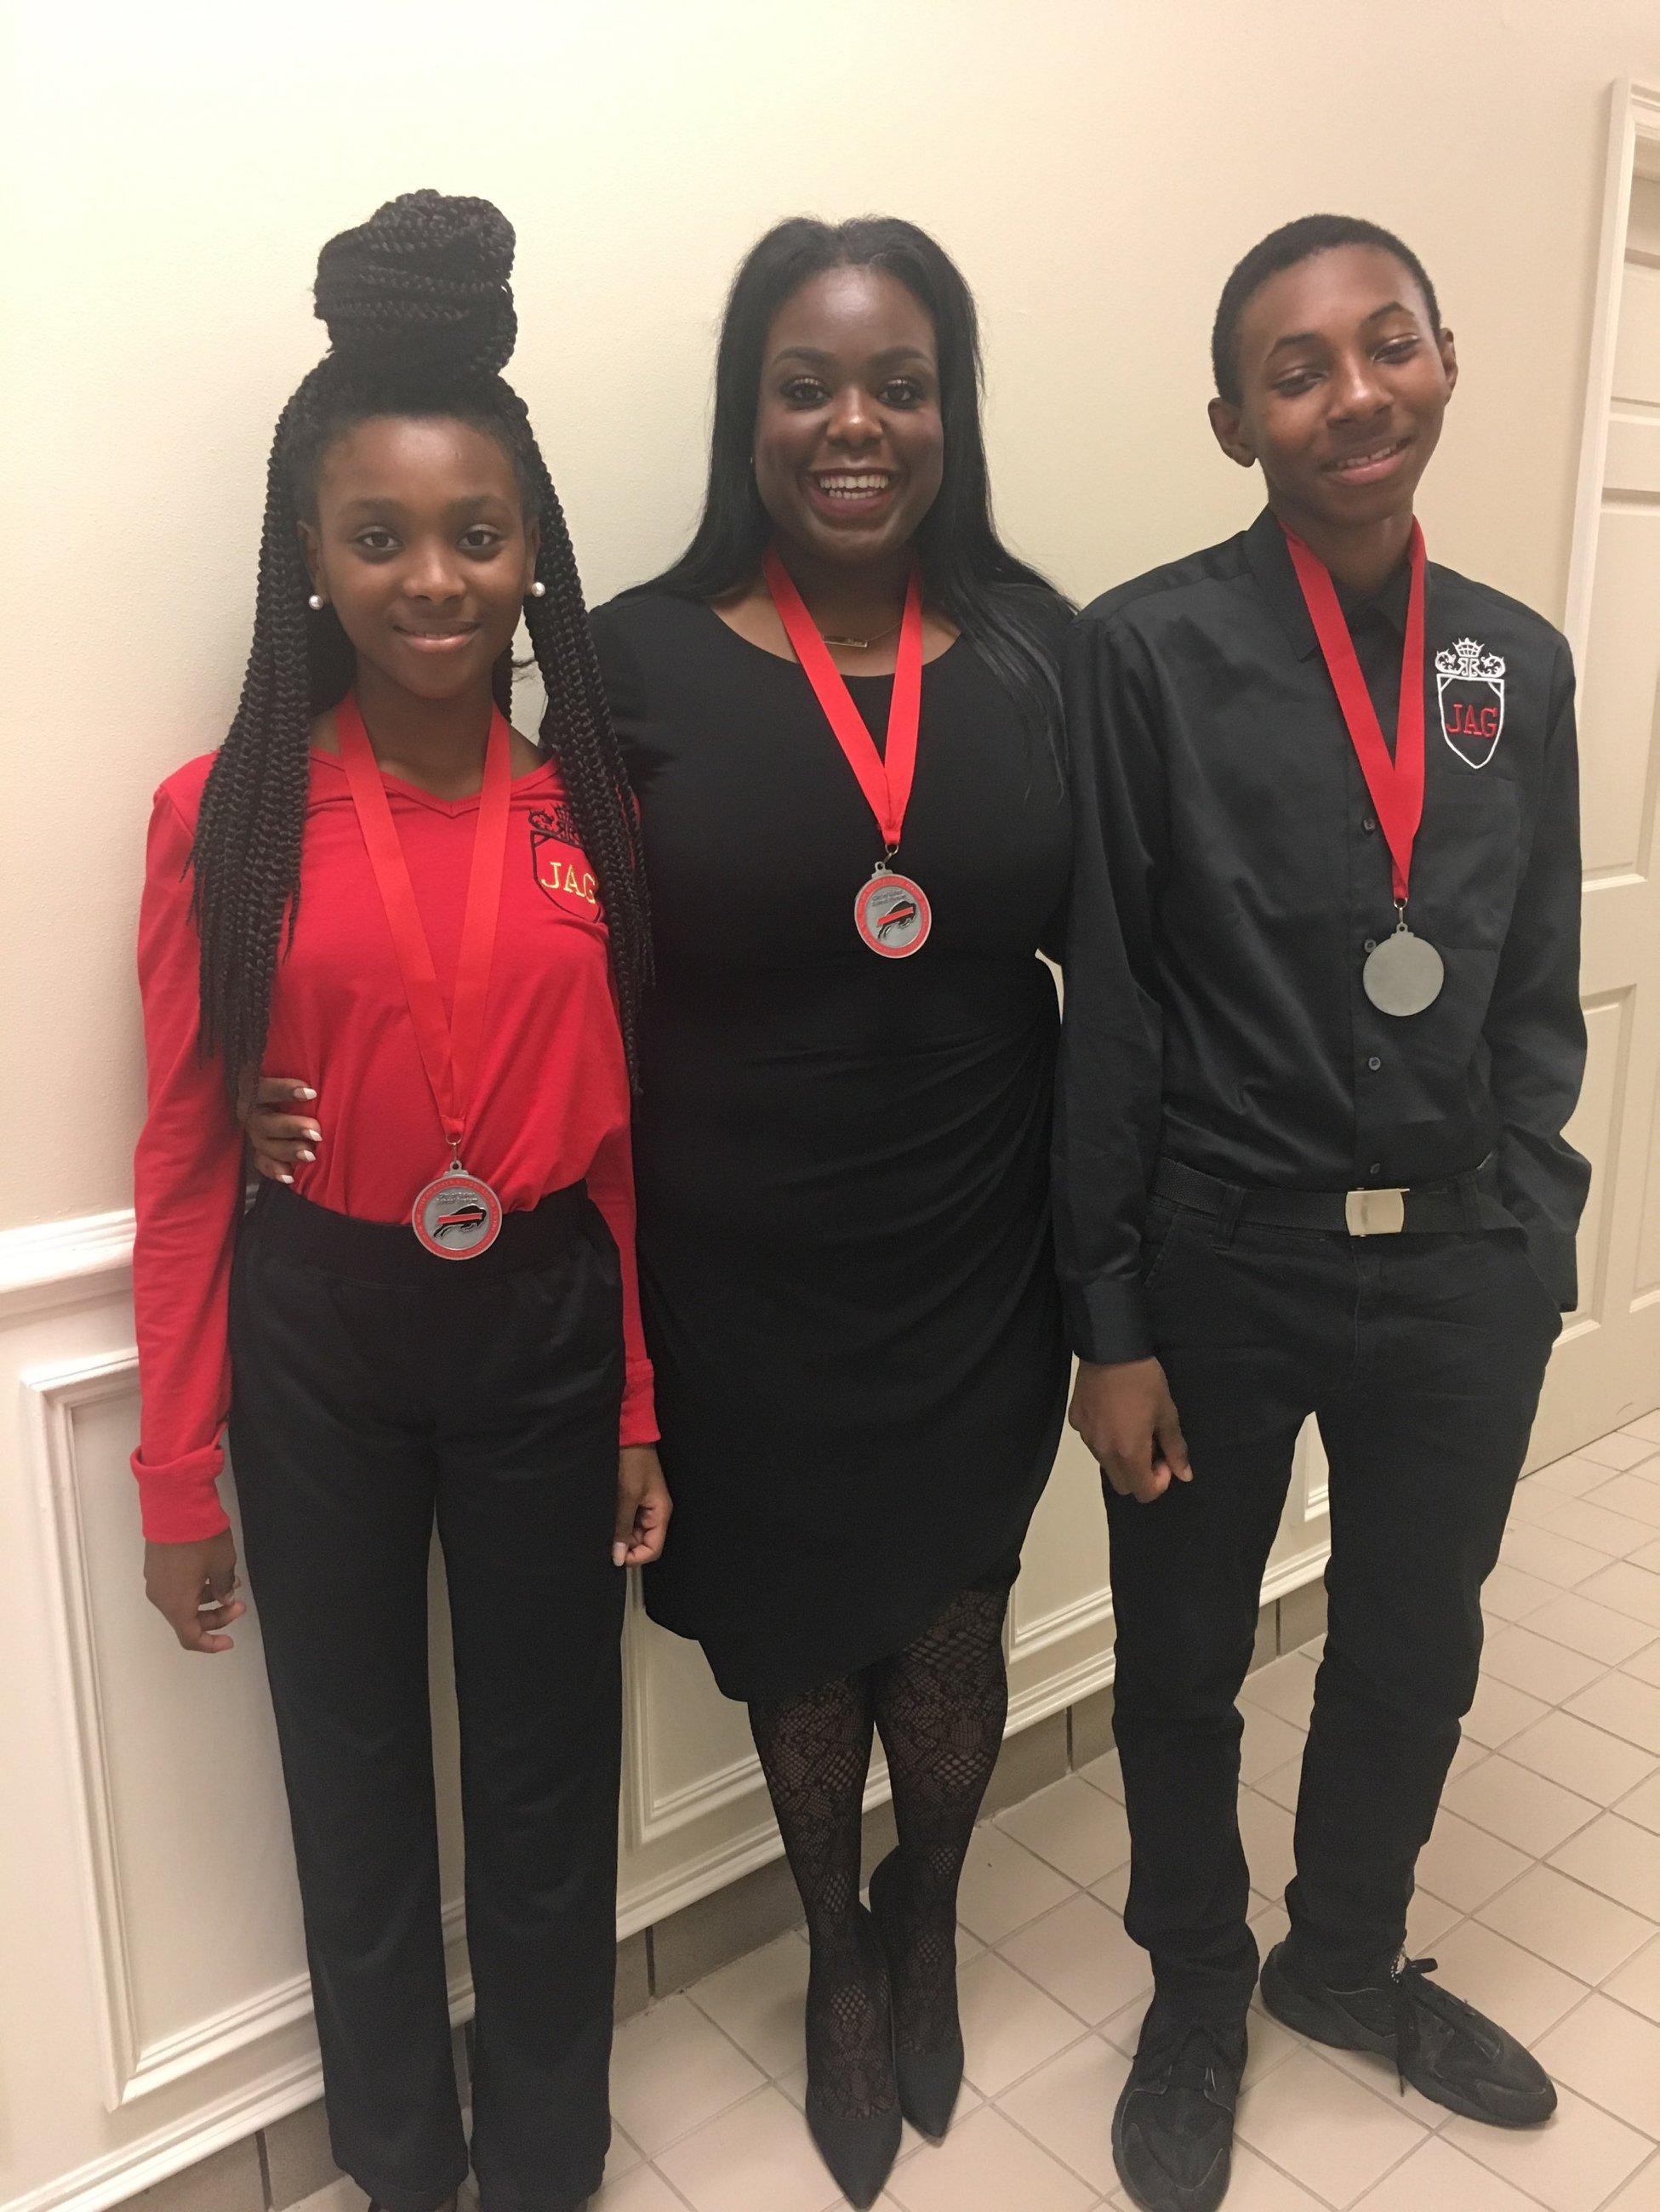 A photo of Baker Middle JAG students and teacher awarded district medallions